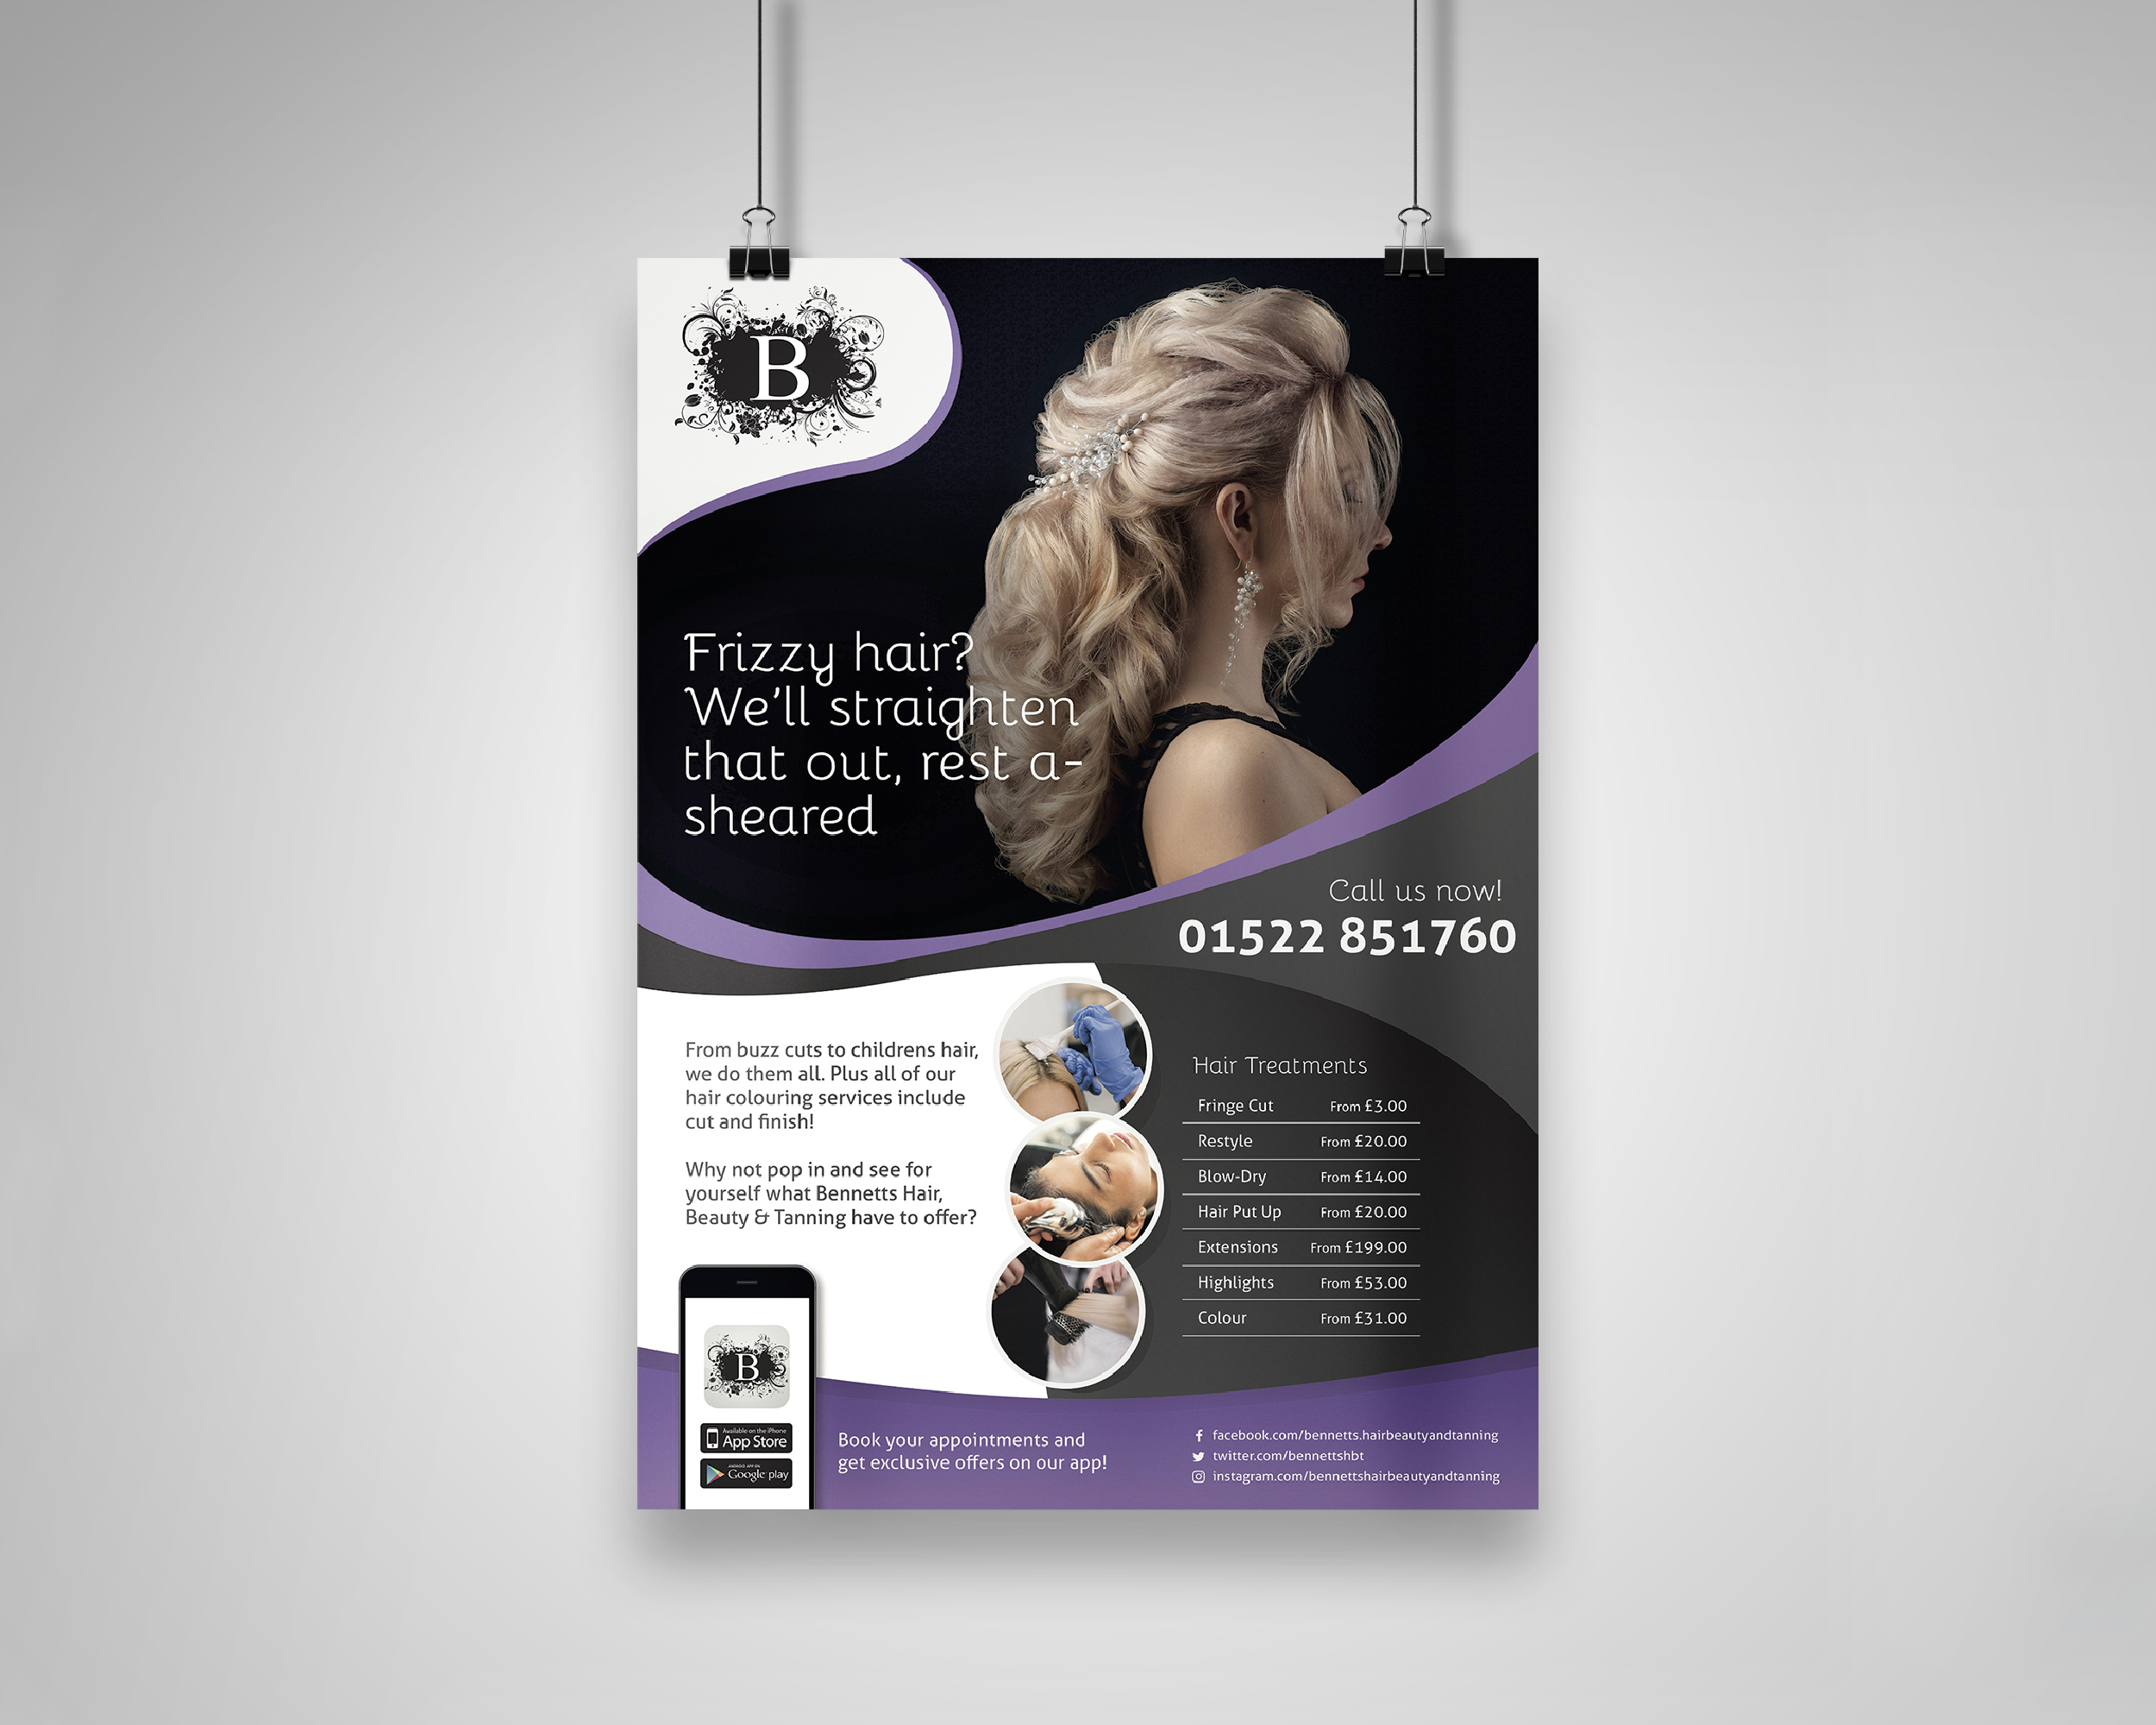 Bennetts Hair Beauty & Tanning Hair Services Poster